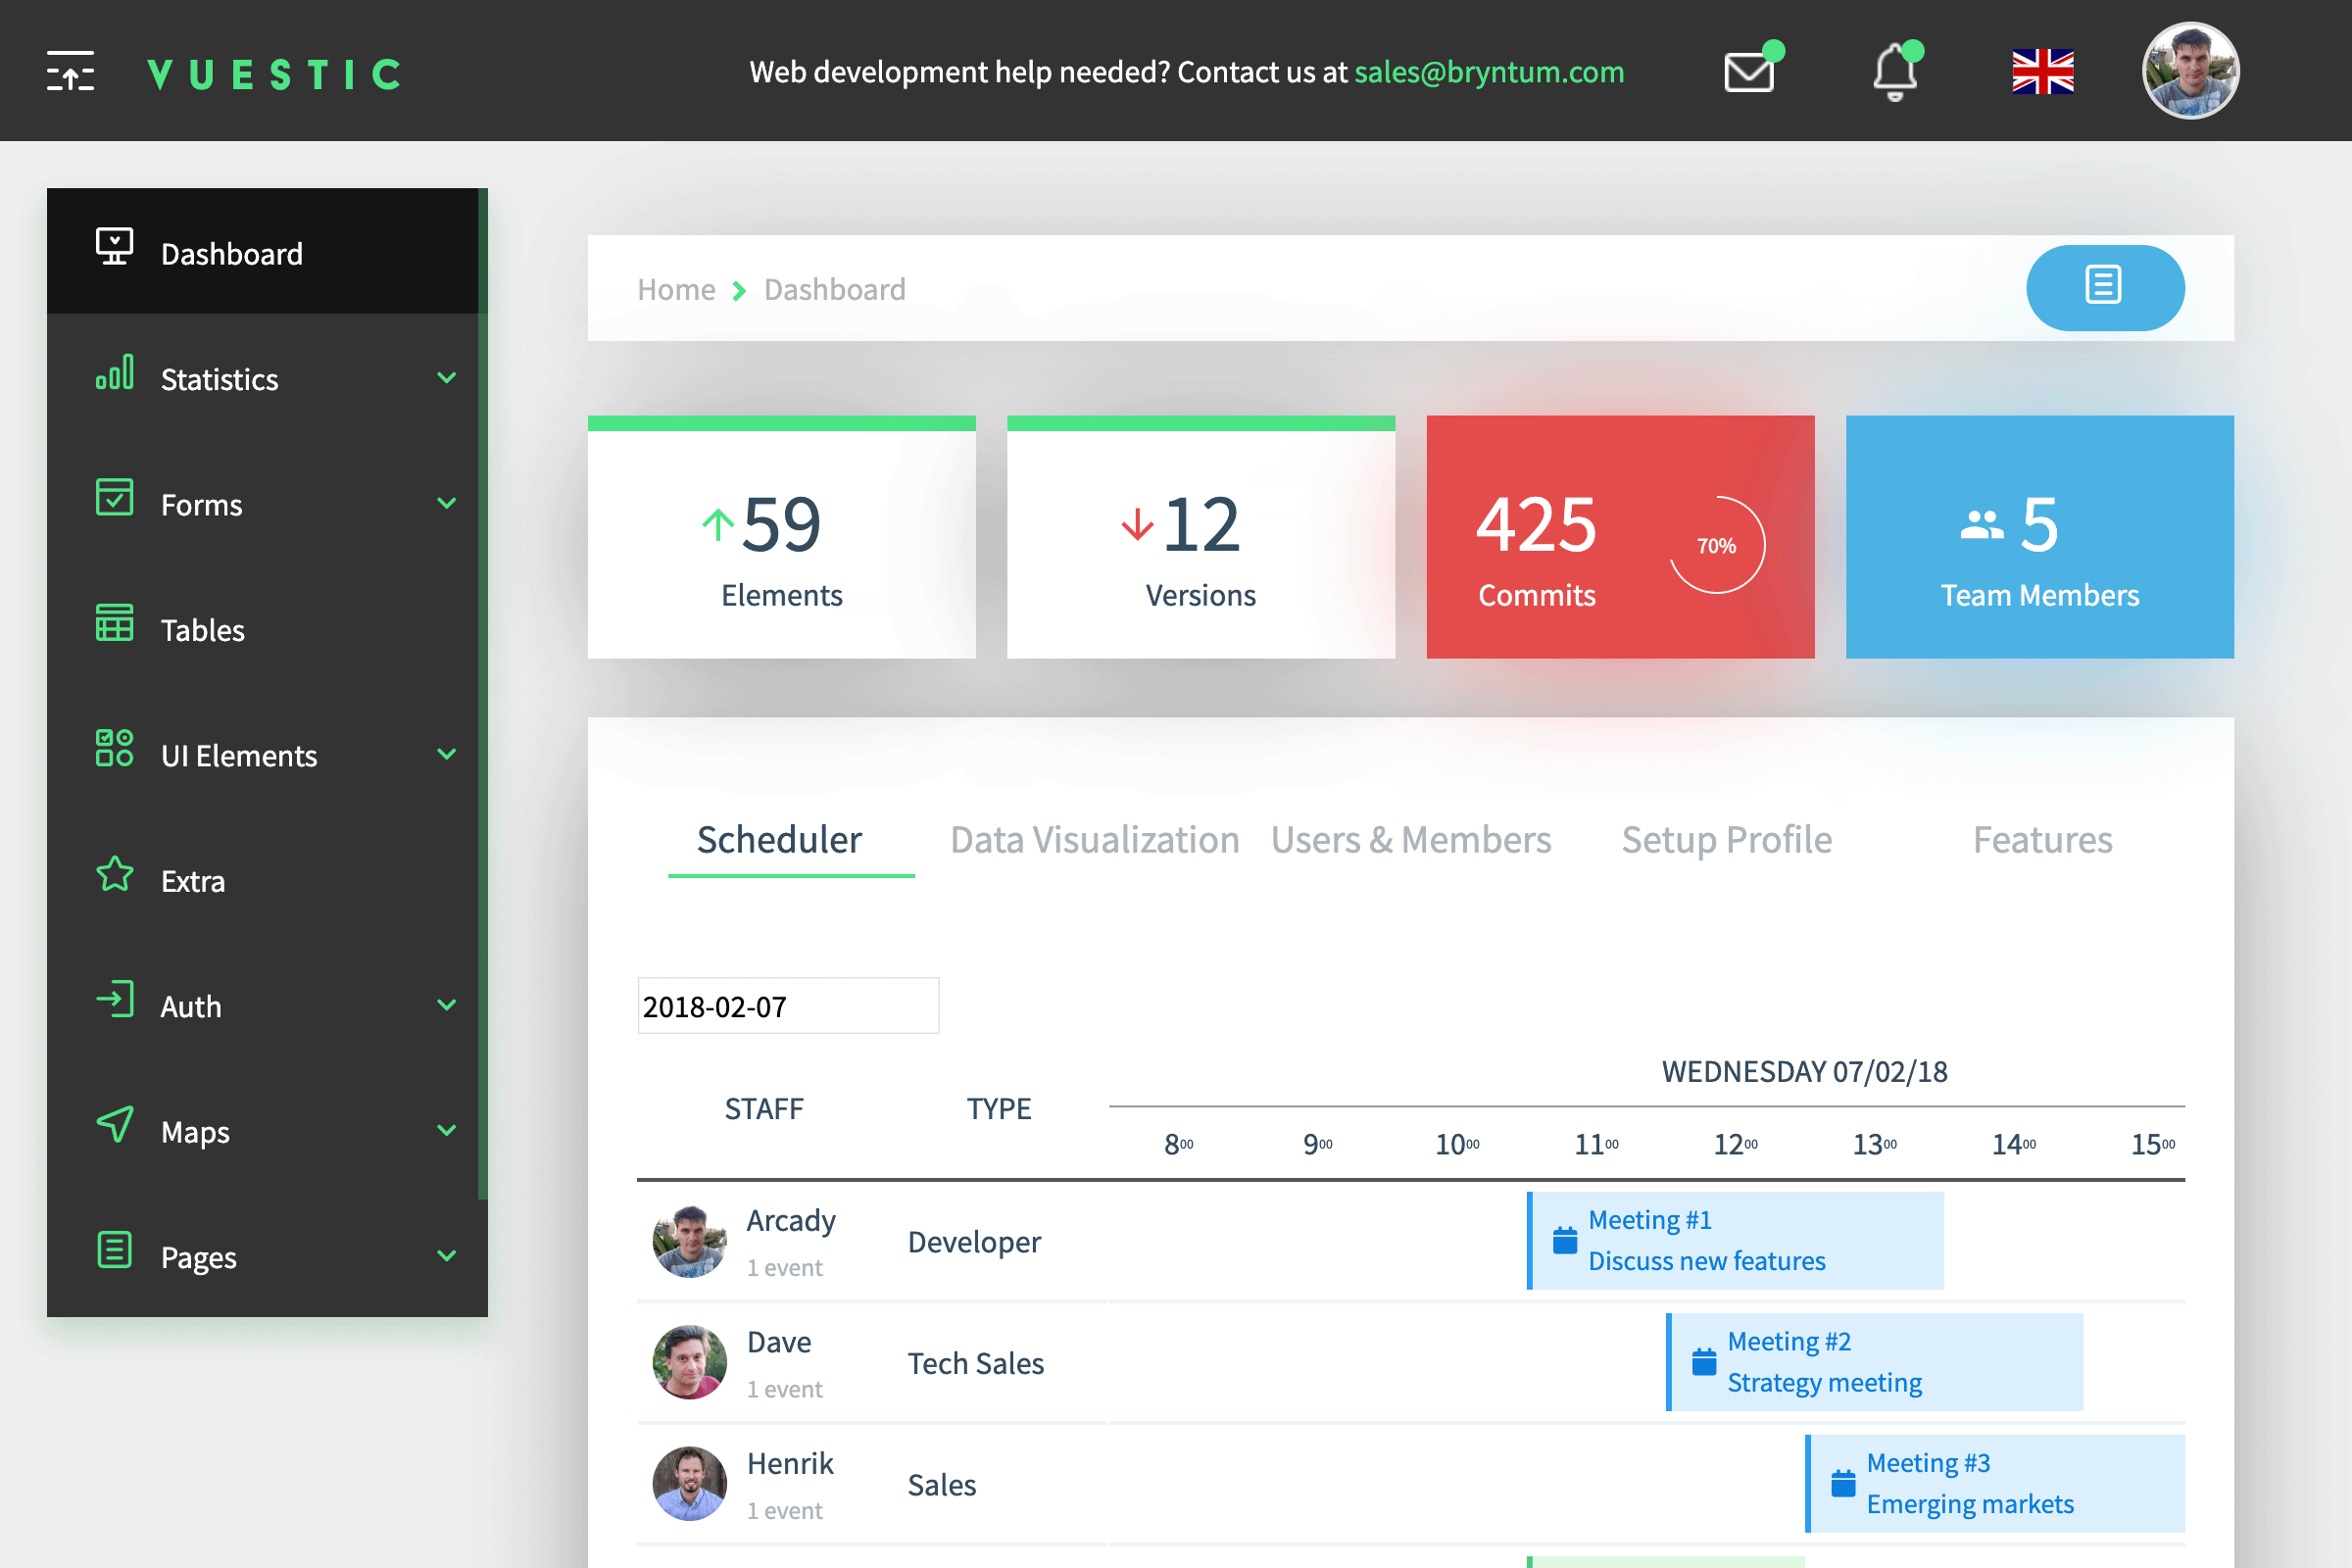 New Vue demo based on the Vuestic template